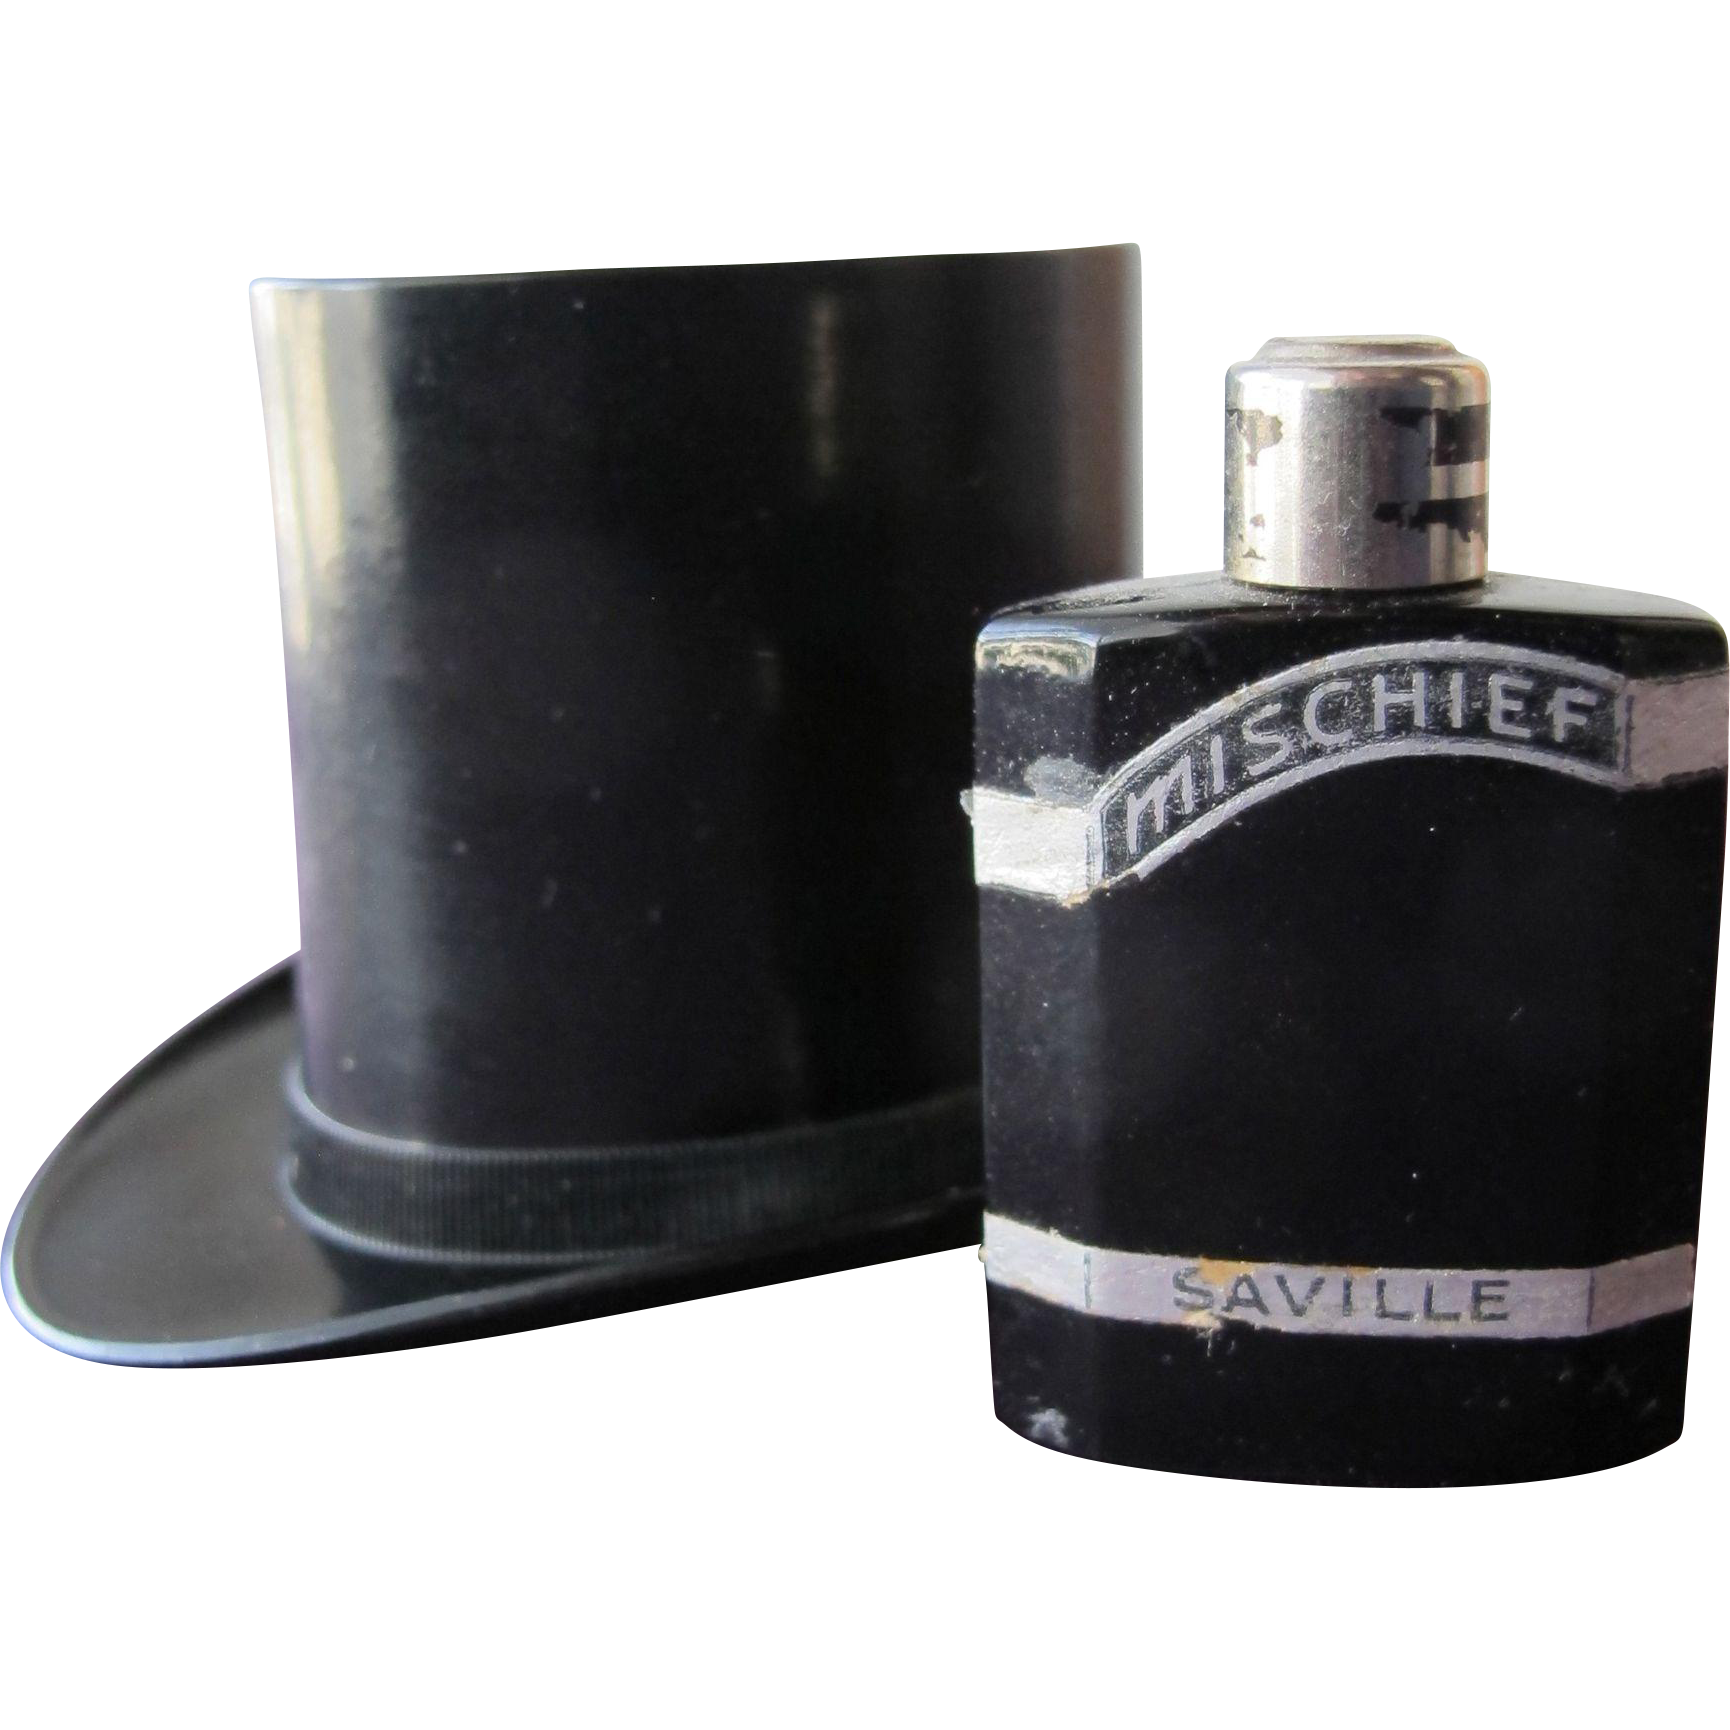 Mischief Perfume Bottle In Hat Box by Saville